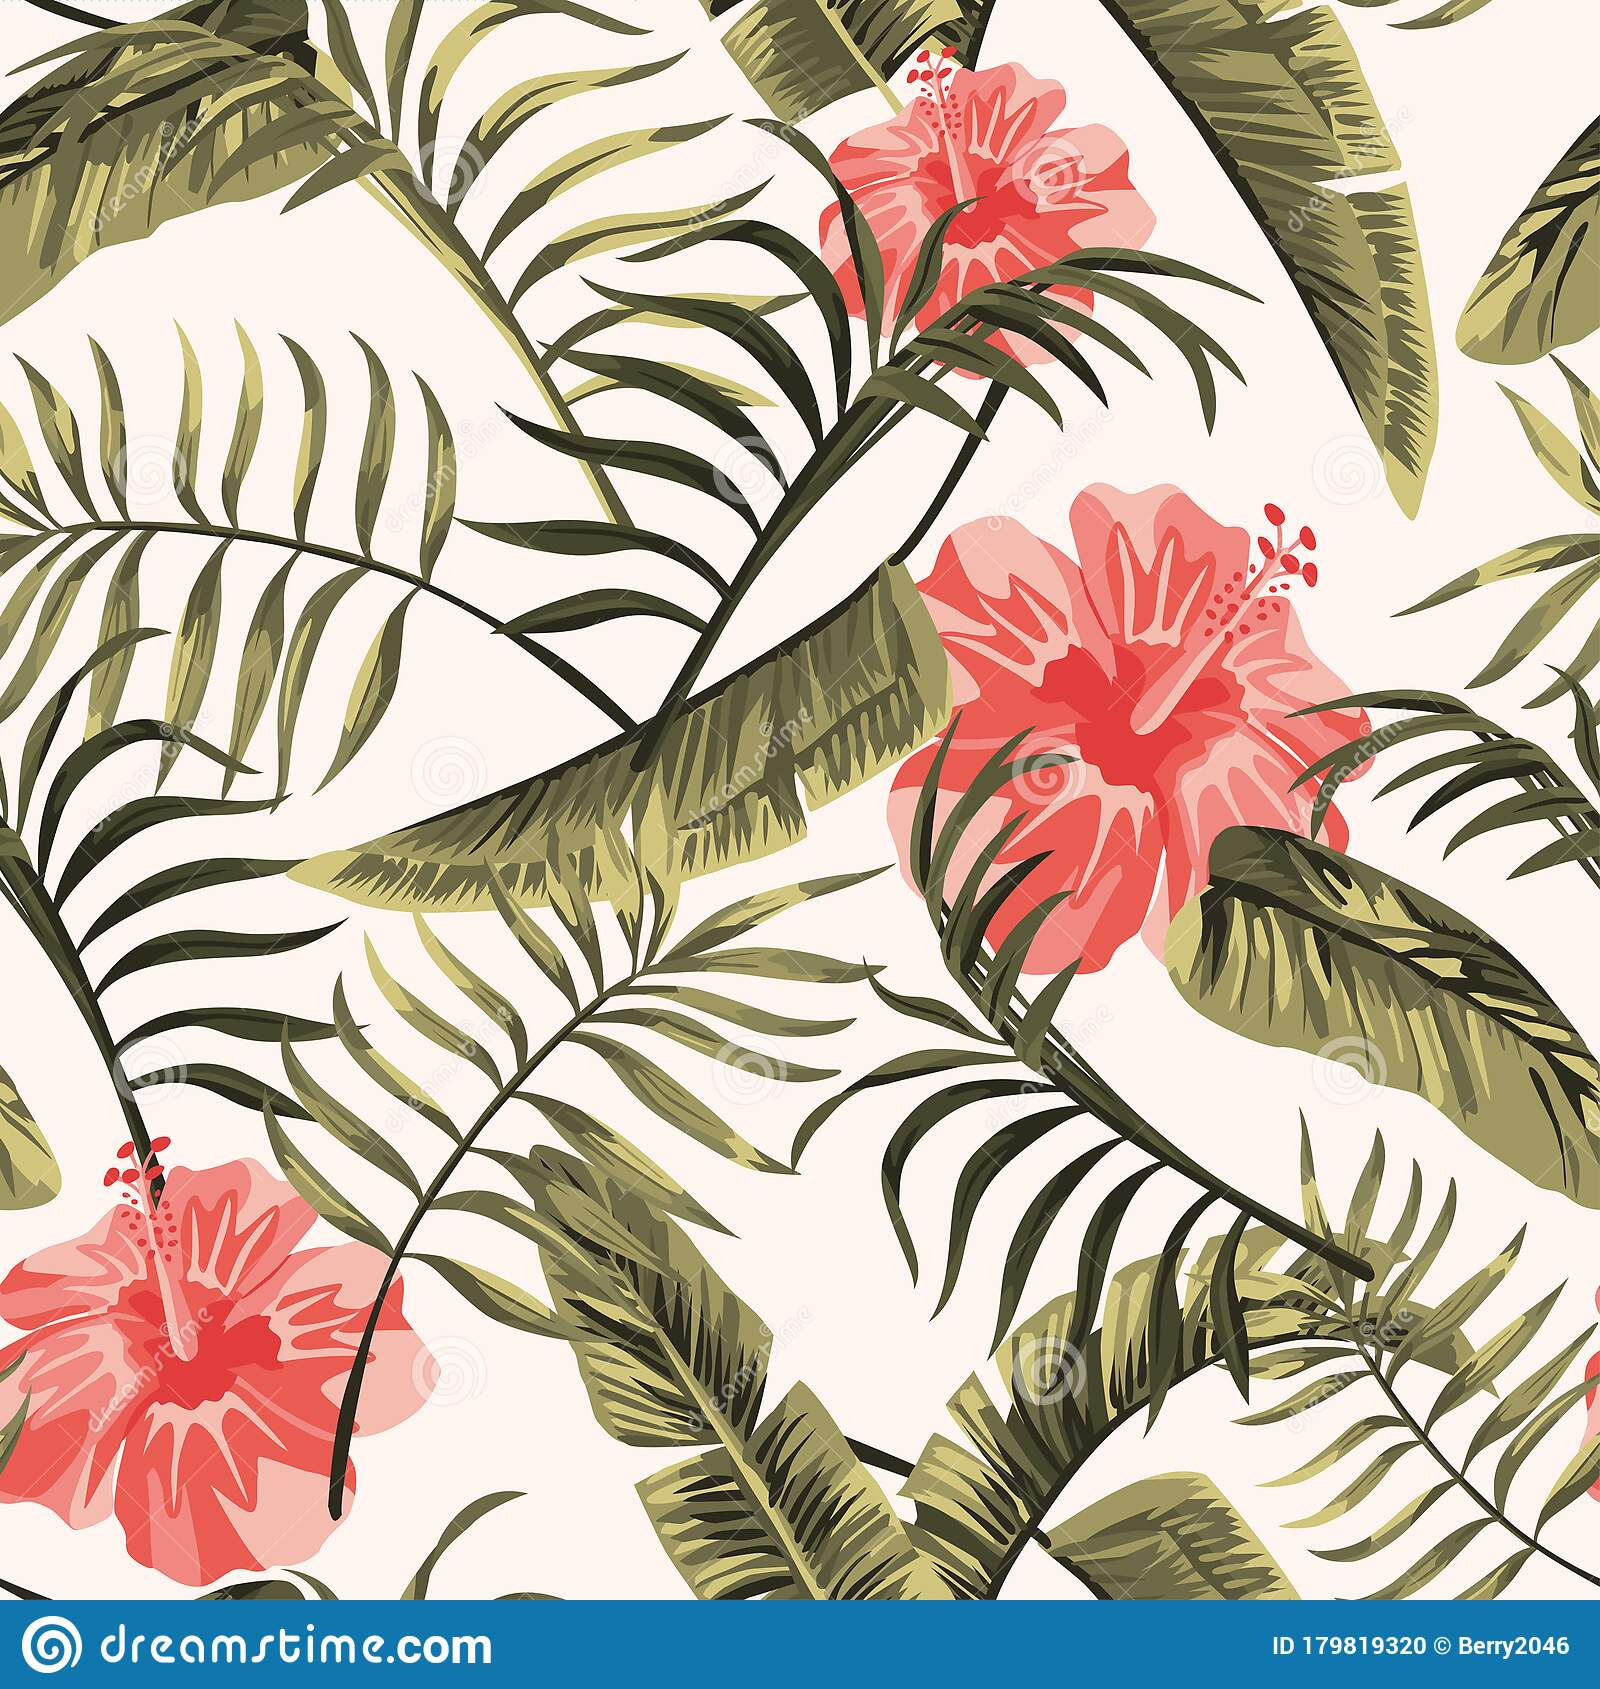 Floral Seamless Pattern Tropical Flowers Hawaiian White Background Stock Vector Illustration Of Beautiful Garden 179819320 Hawaiian background stock vectors, clipart and illustrations. dreamstime com